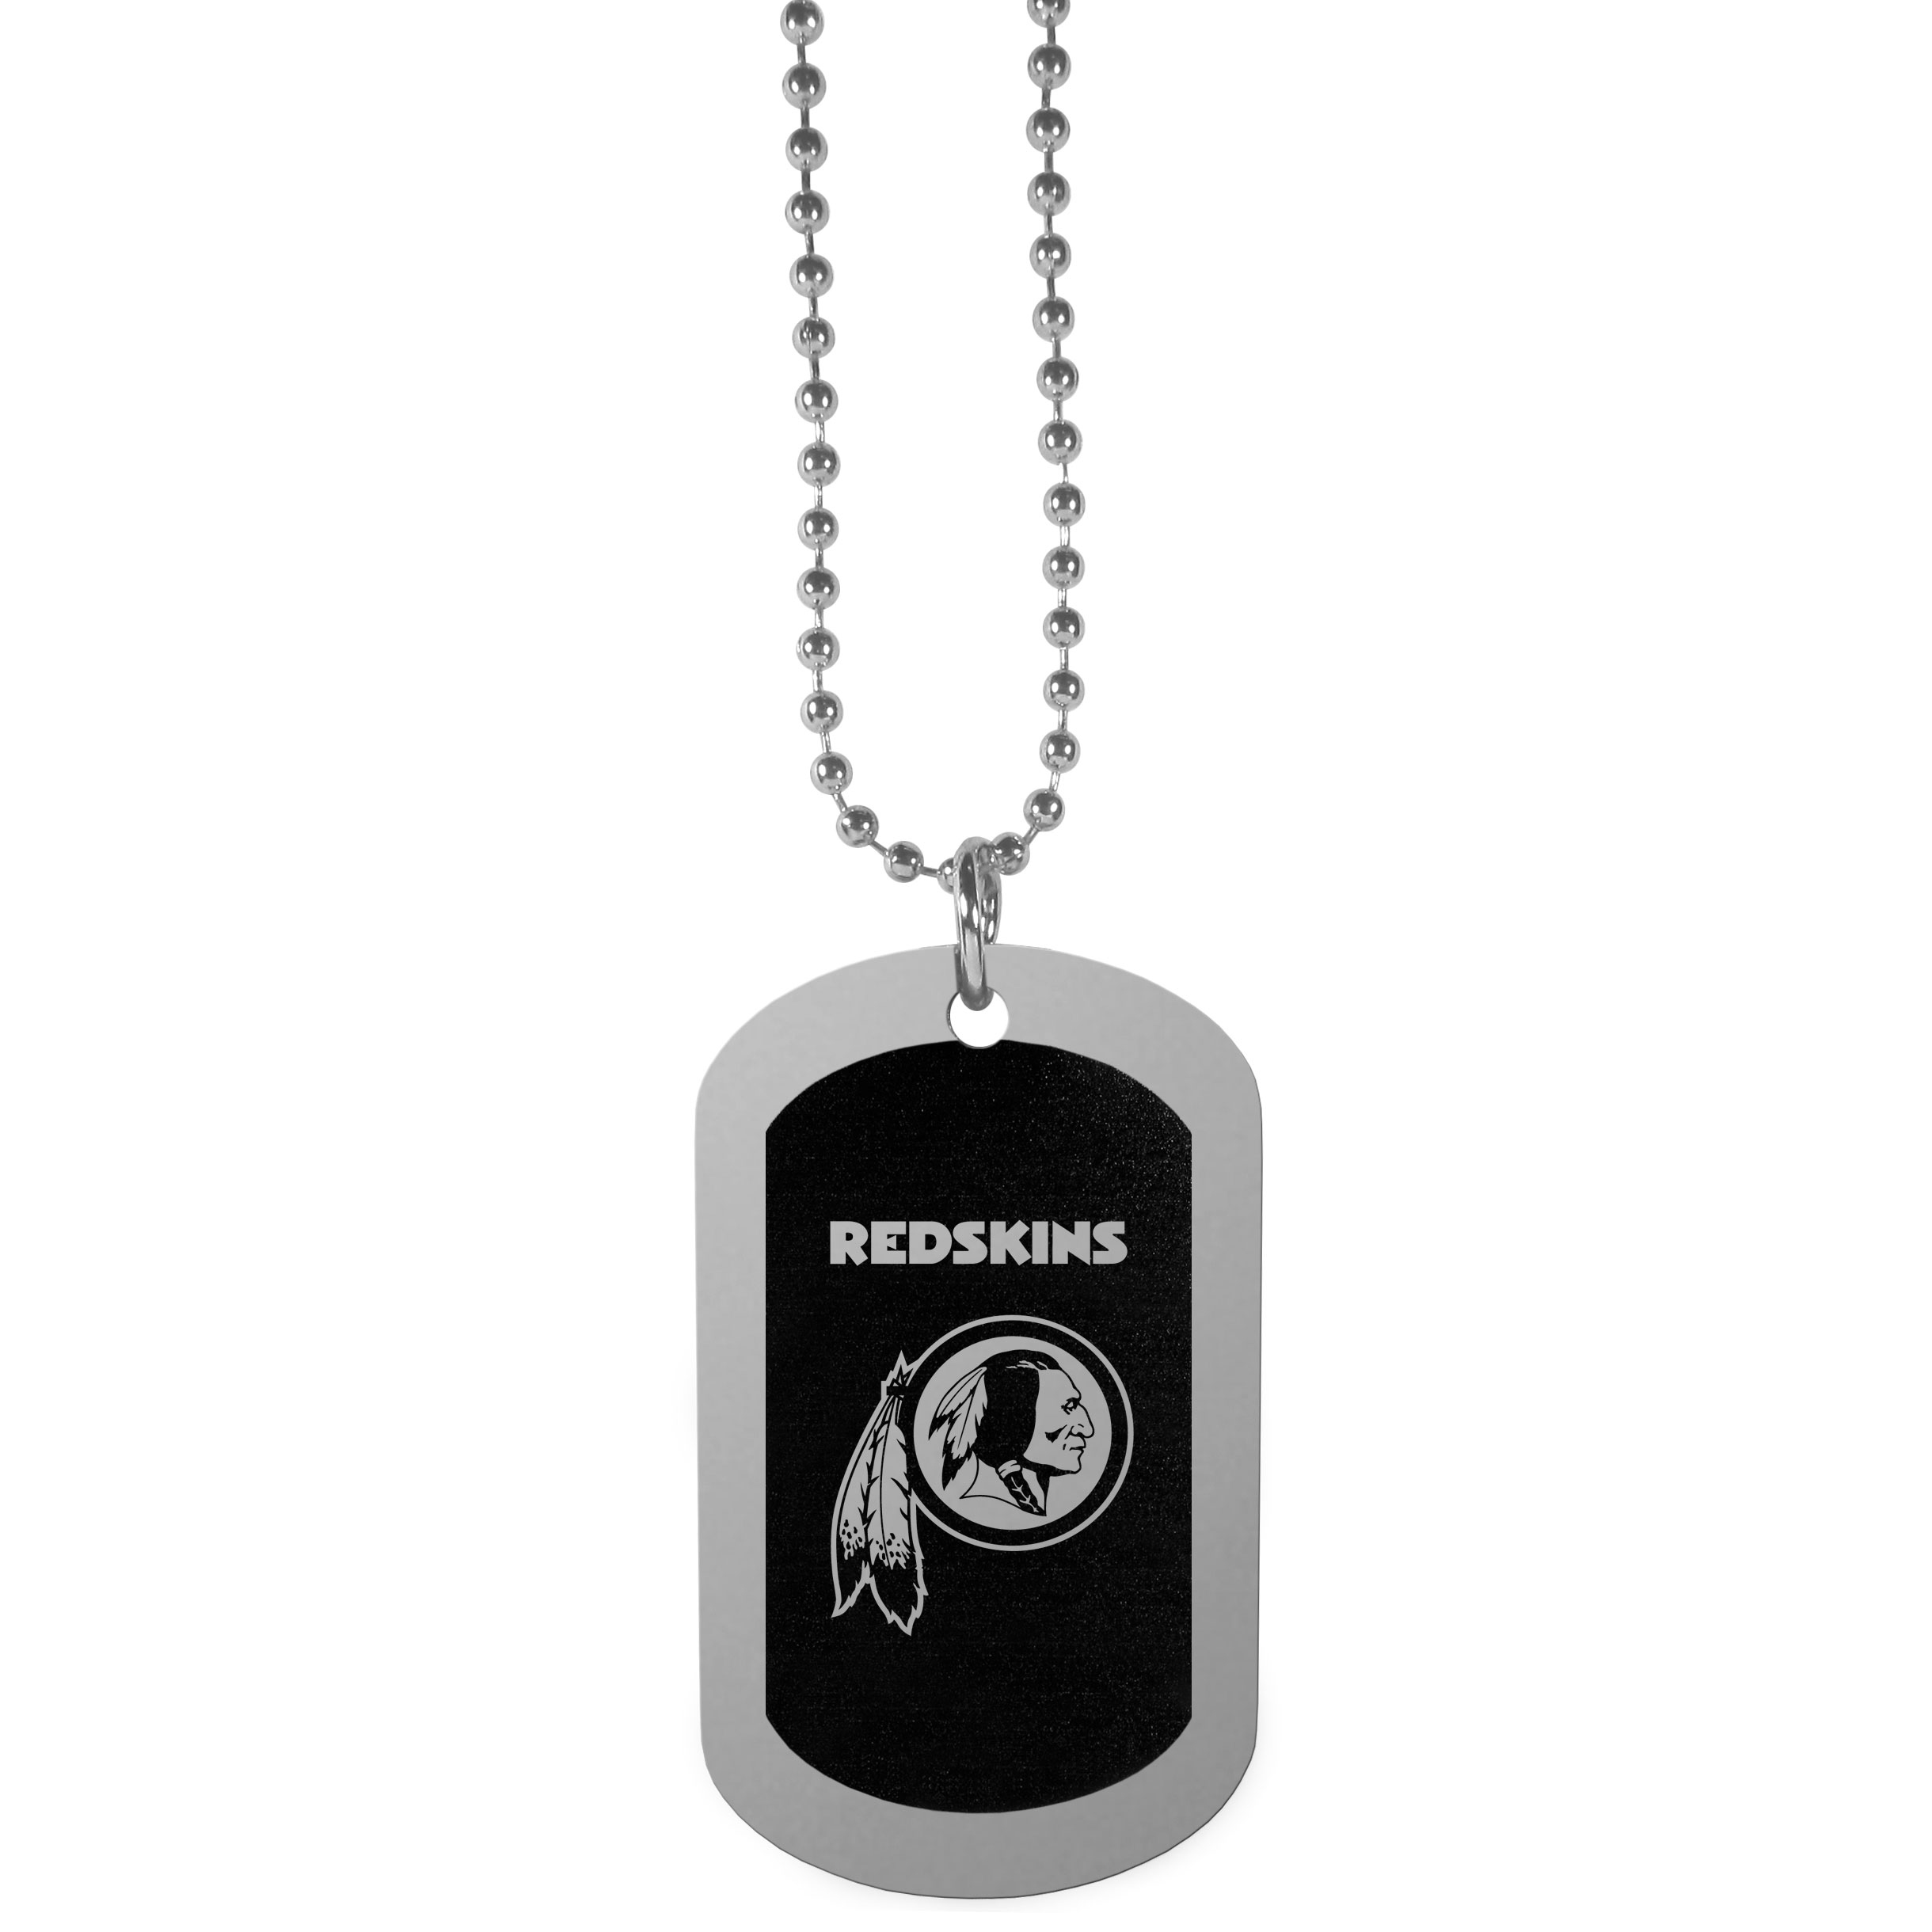 Washington Redskins Chrome Tag Necklace - Dog tag necklaces are a fashion statement that is here to stay. The sporty version of the classic tag features a black printed over a high polish tag to create a bold and sporty look. The tag comes on a 26 inch ball chain with a ball and joint clasp. Any Washington Redskins would be proud to wear this attractive fashion accessory.